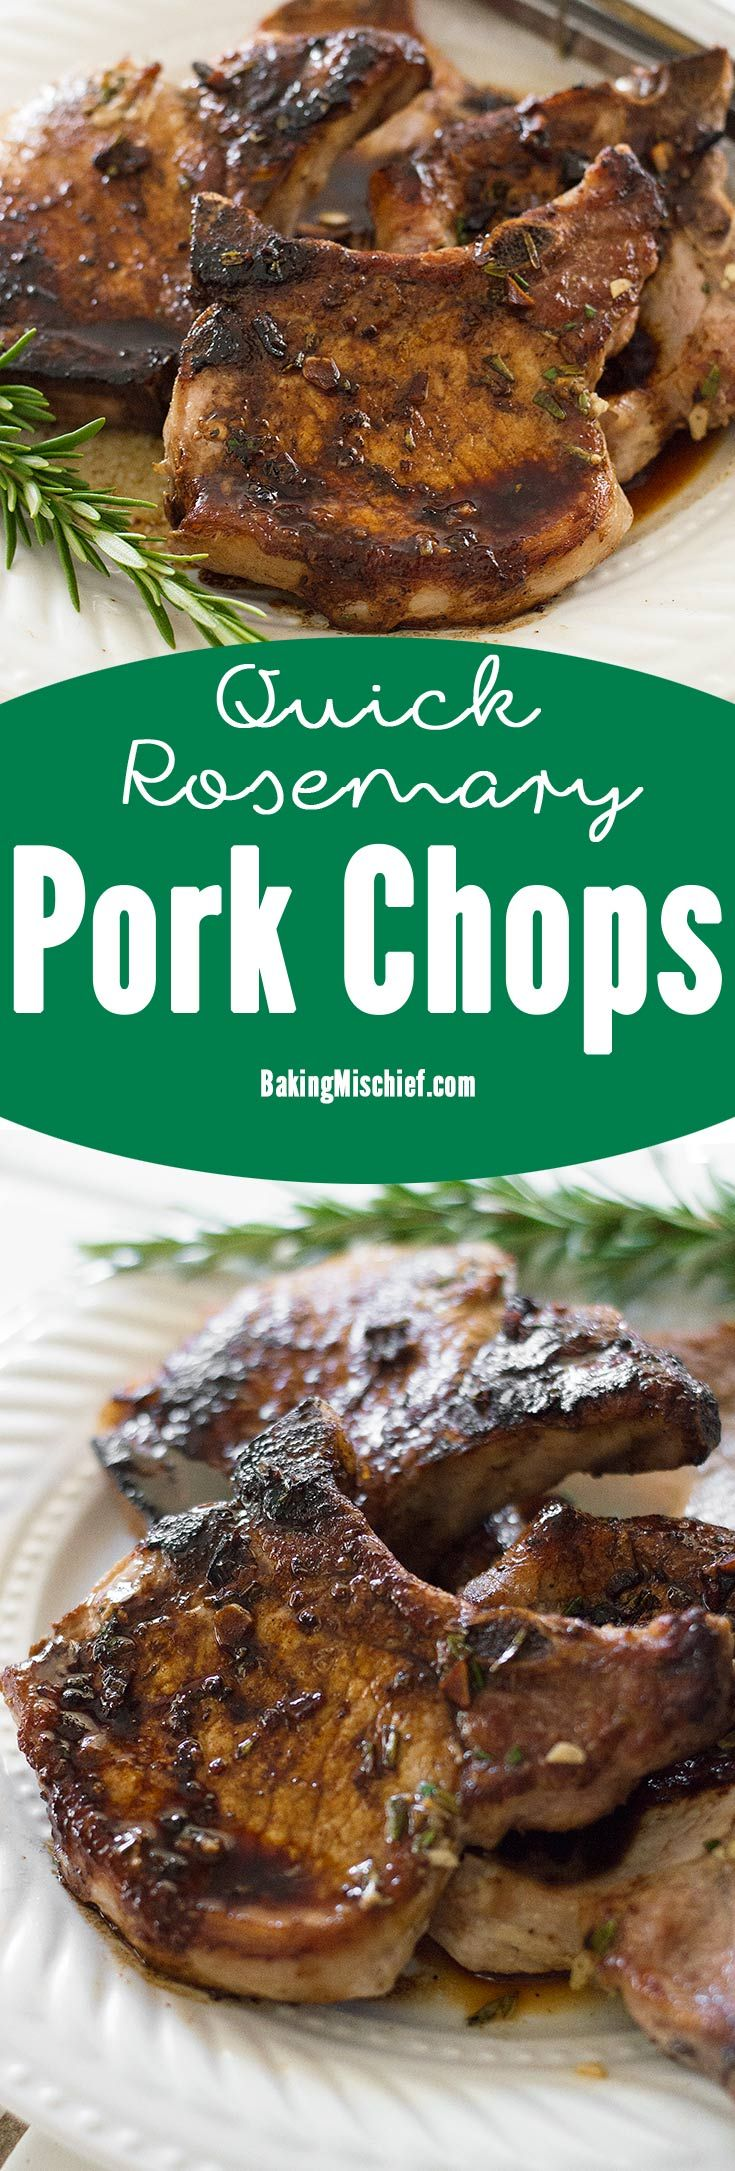 Quick pork chops made with rosemary and sherry that can be